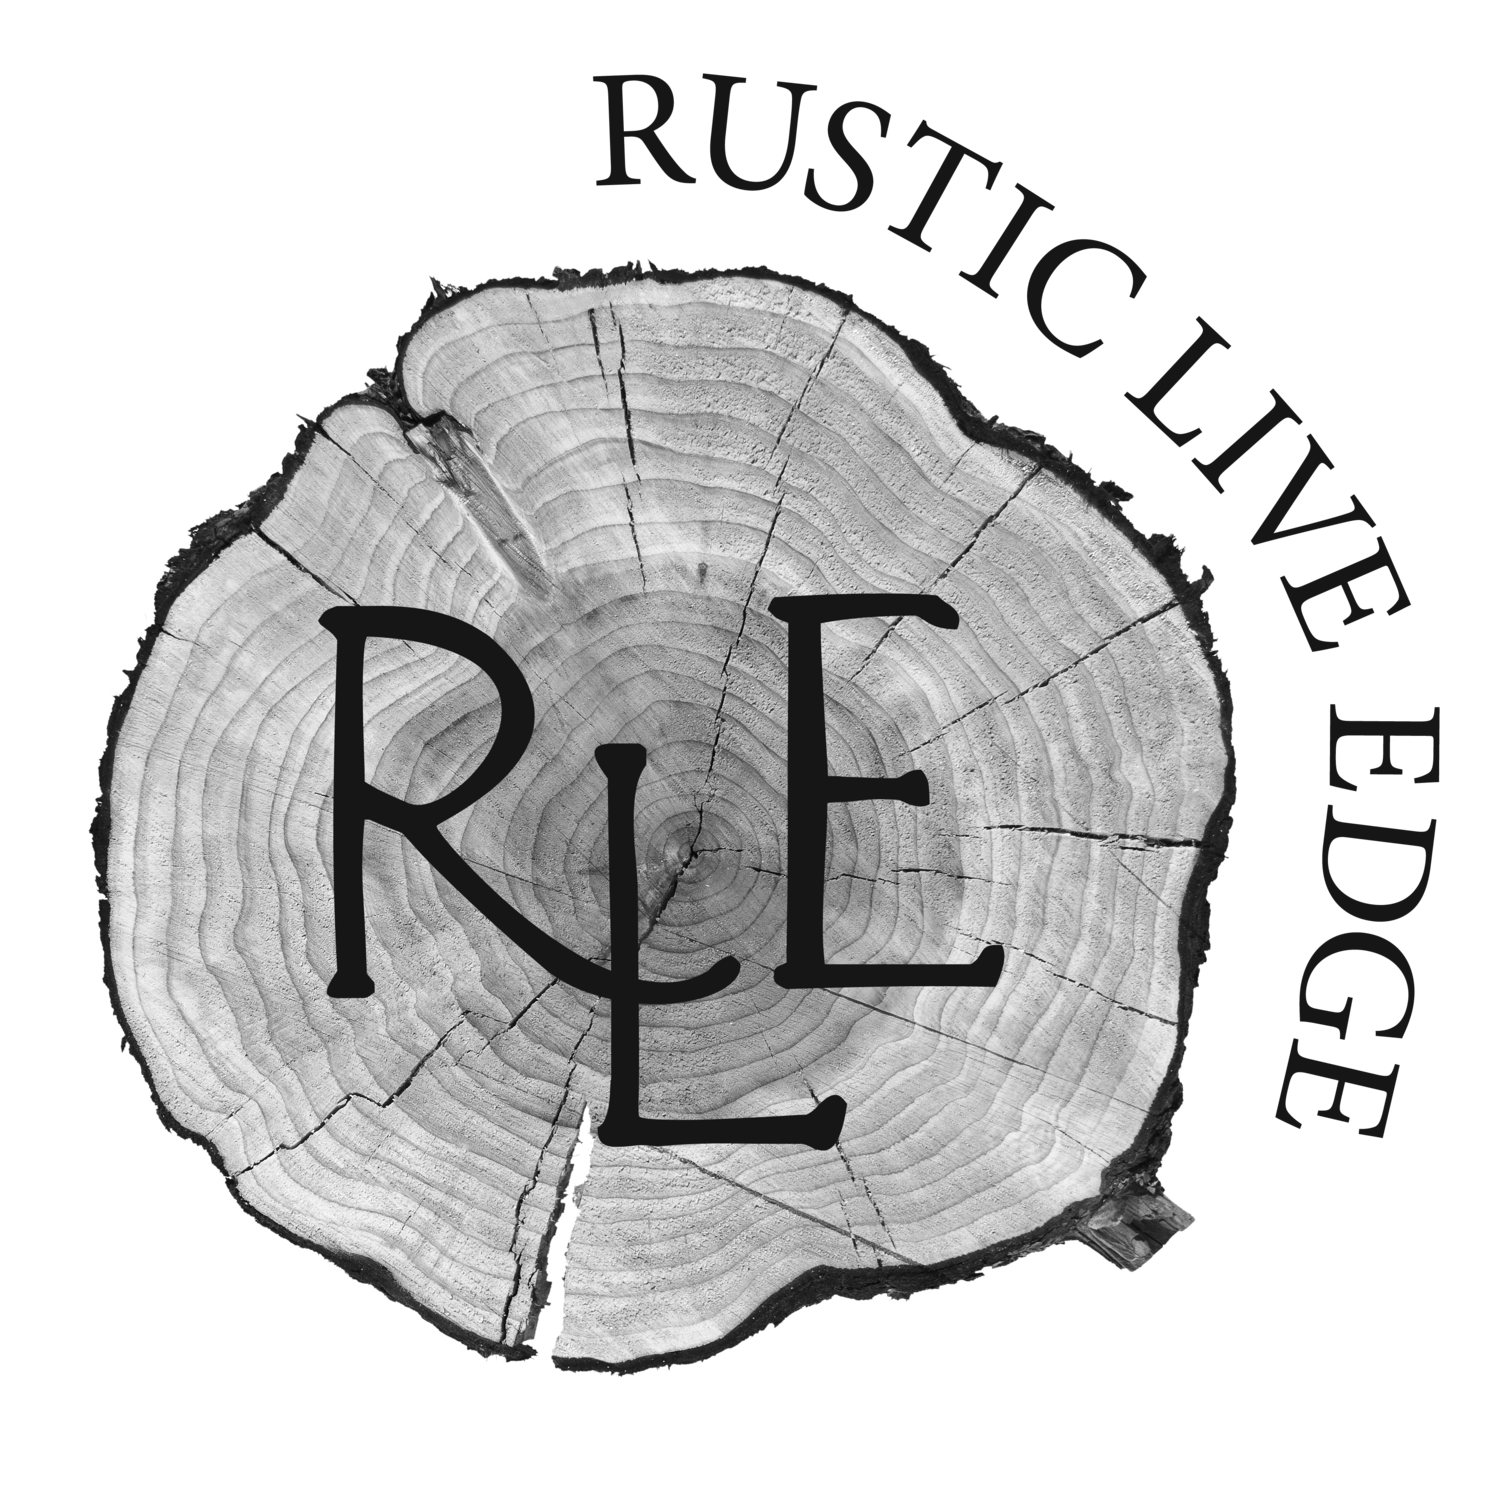 Edge drawing deforestation. Rustic live